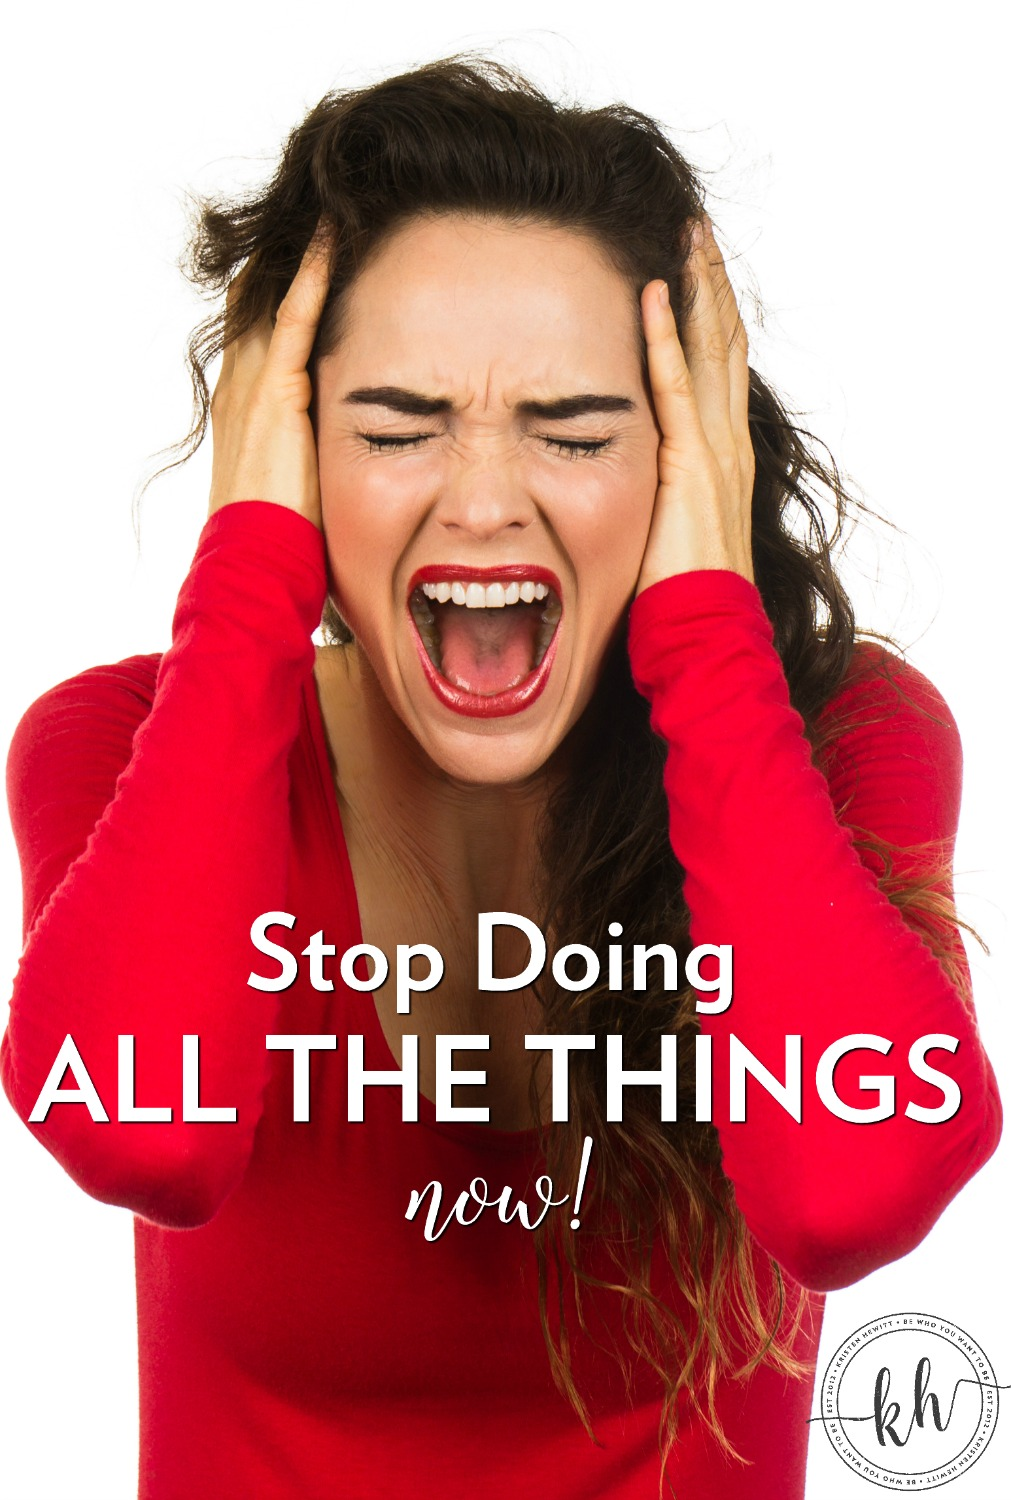 Do you have a hard time saying no to everything? So did I. It's hard to let others down. So here are 9 ways to say no without being a total jerkface.